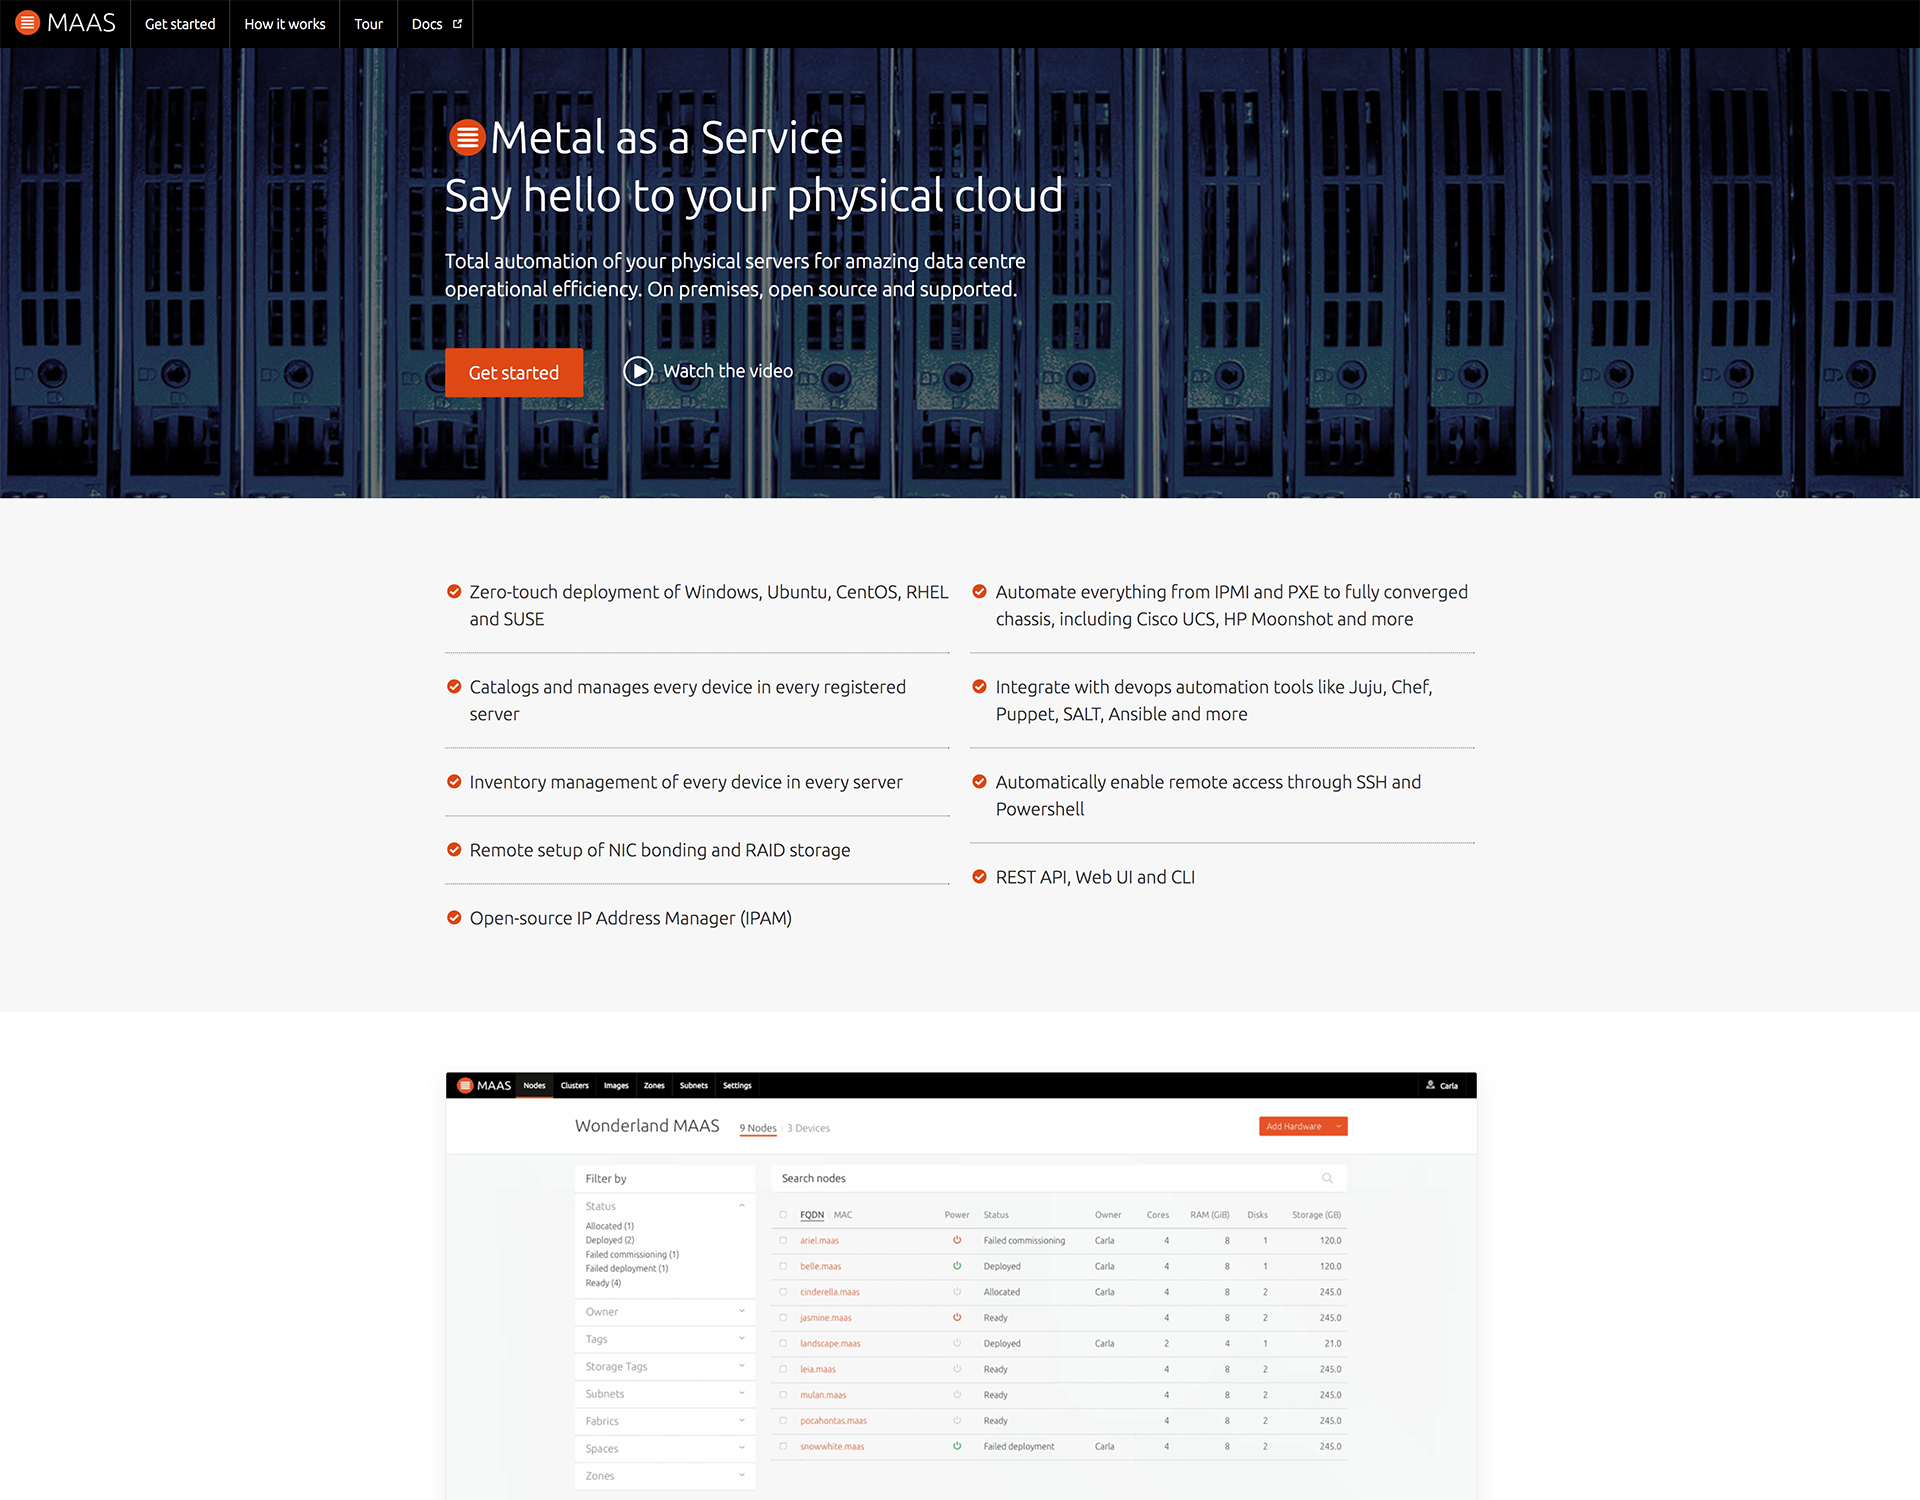 Image of the MAAS website homepage and intro.